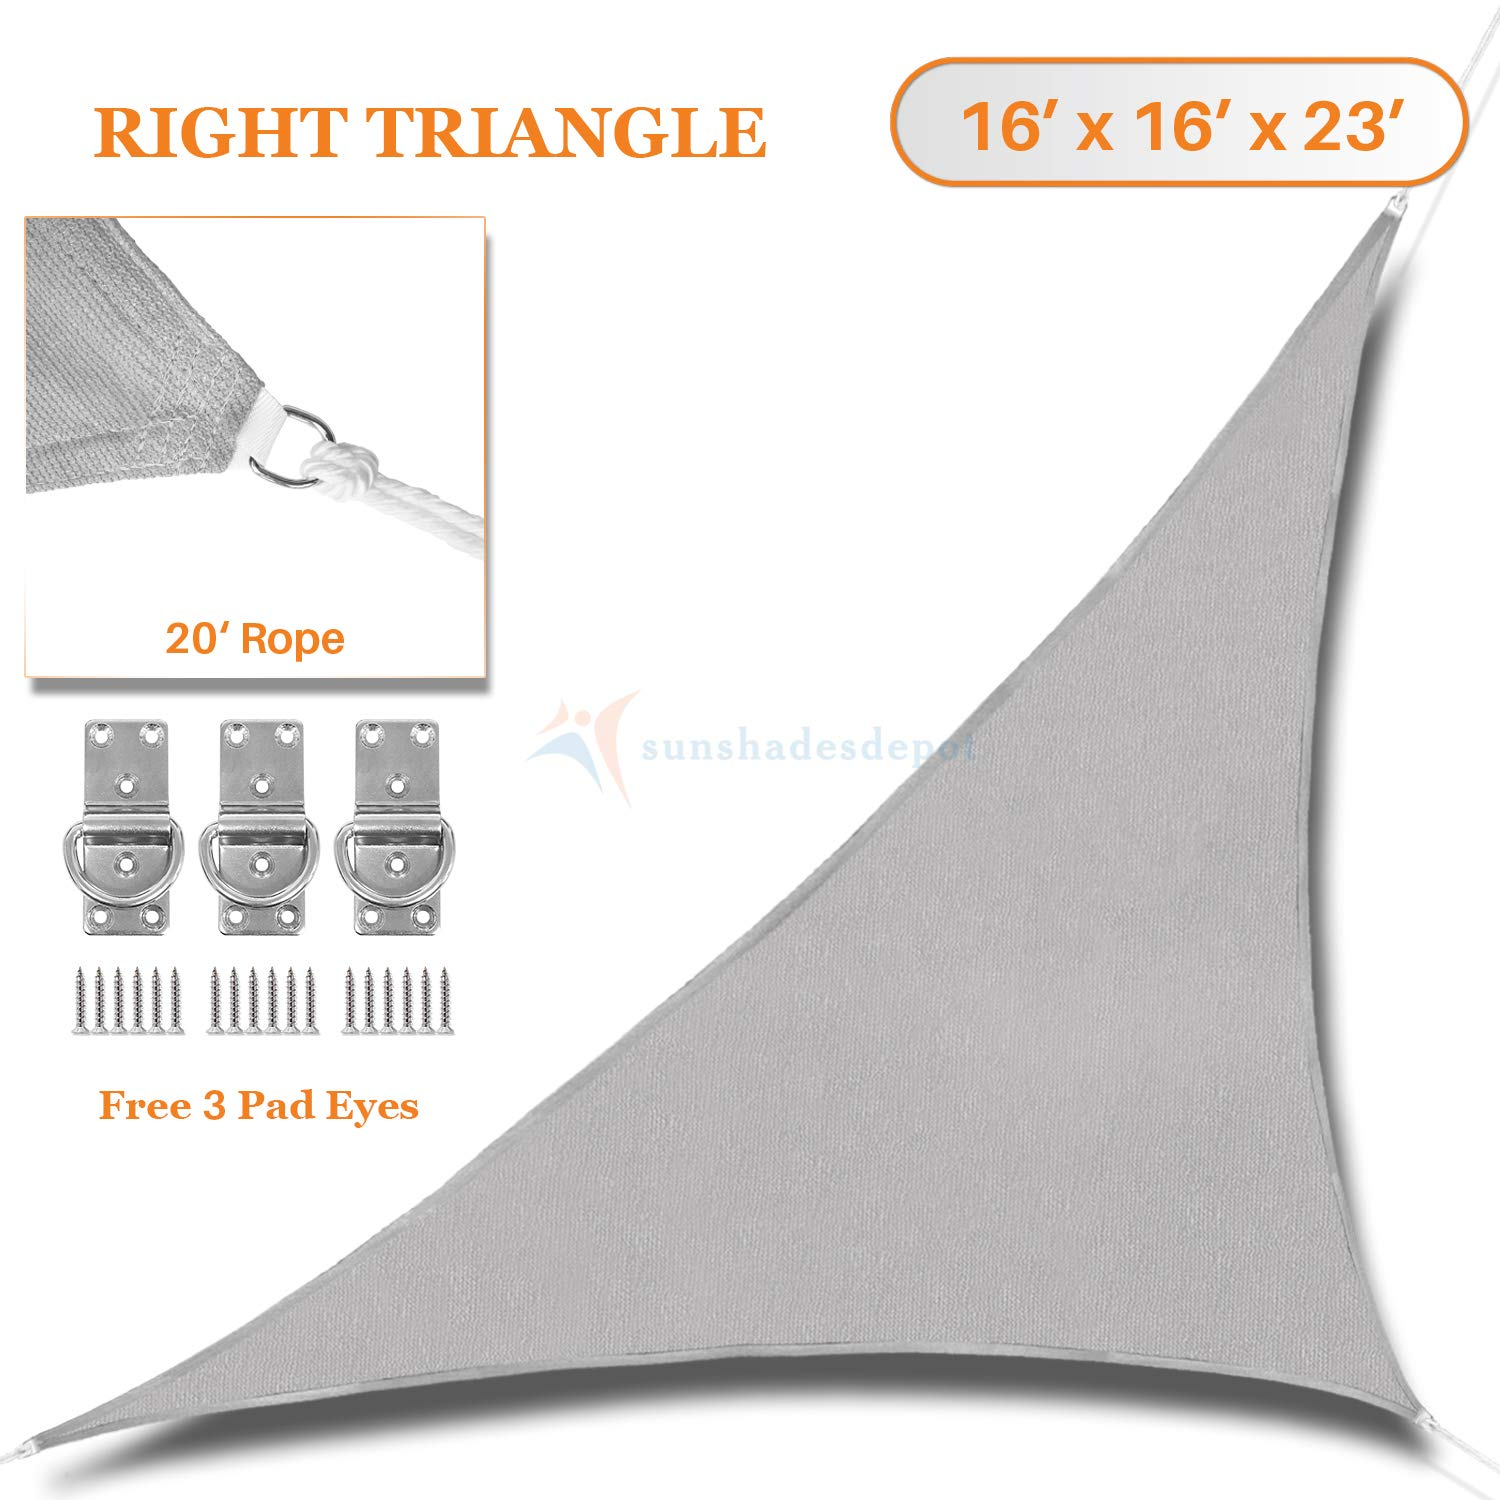 Sunshades Depot 16' x 16' x 23' Light Grey Sun Shade Sail Right Triangle Permeable Canopy Custom Commercial Standard 180 GSM HDPE